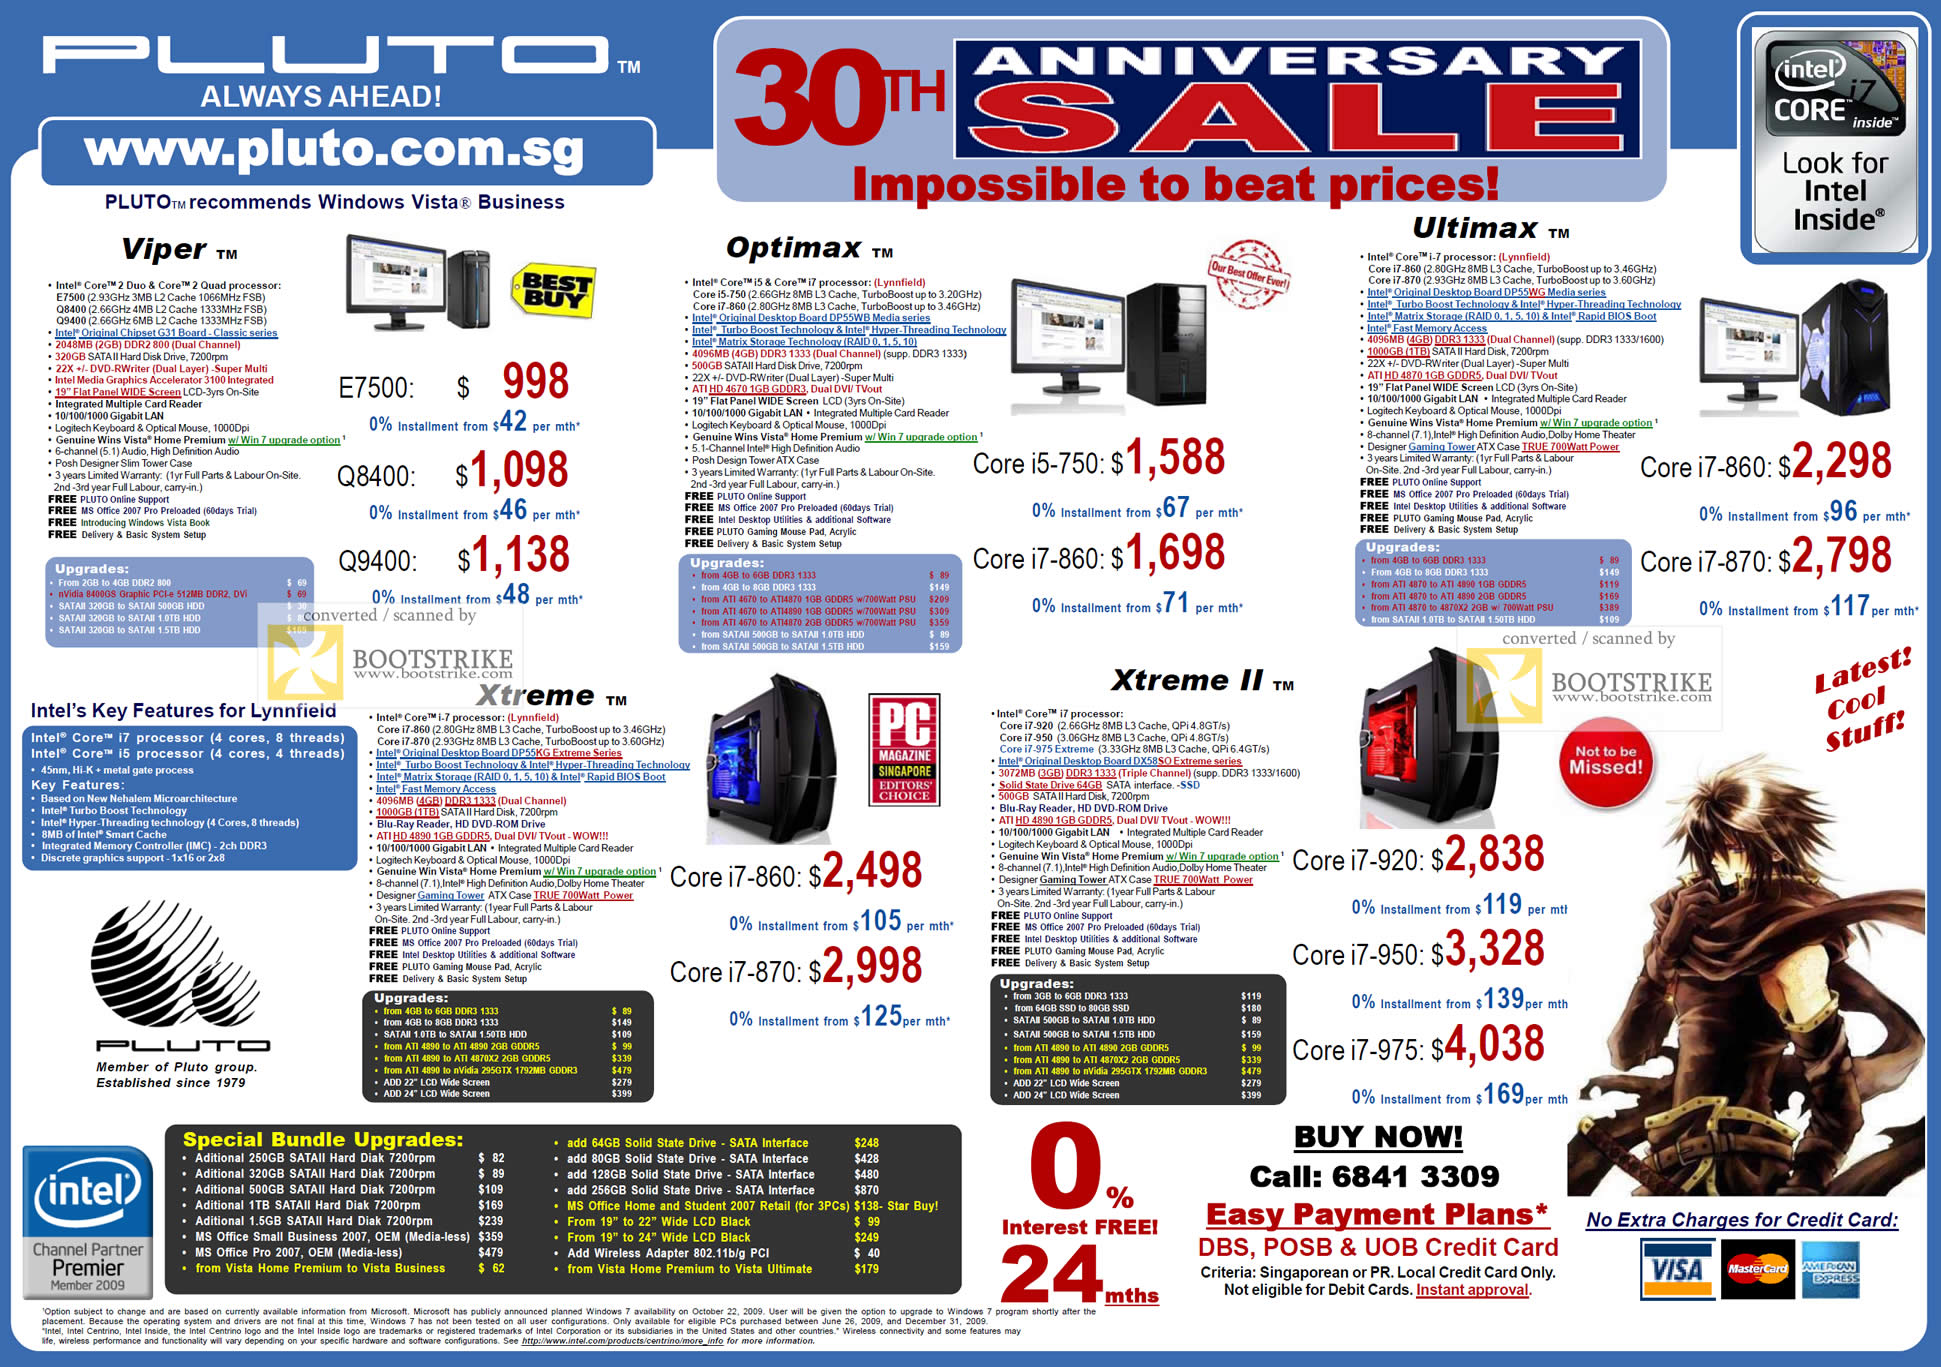 Comex 2009 price list image brochure of Pluto Desktop Gaming Viper Xtreme Optimax Ultimax